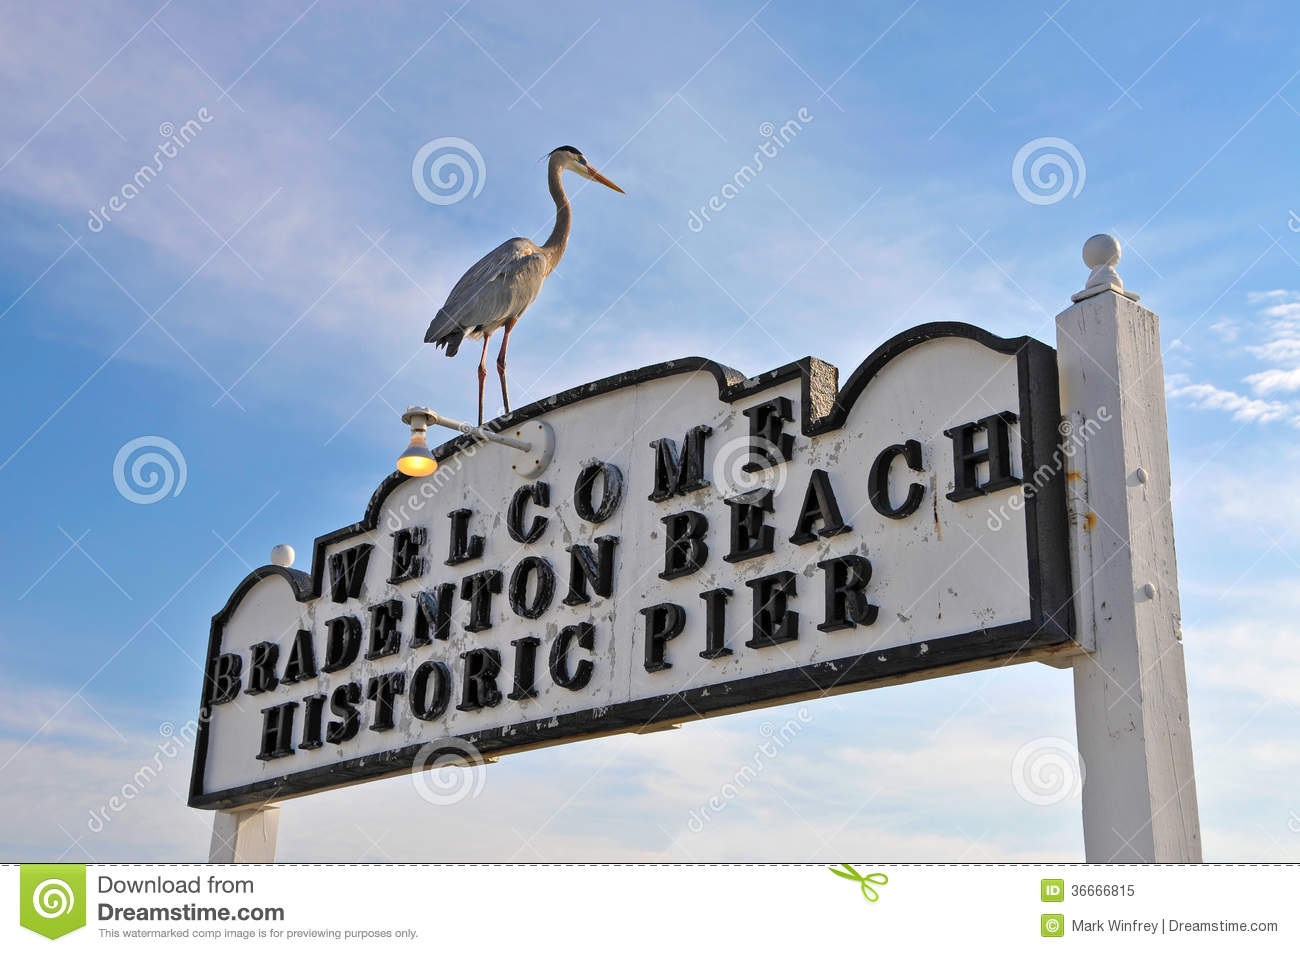 Bradenton Beach Historic Pier Sign